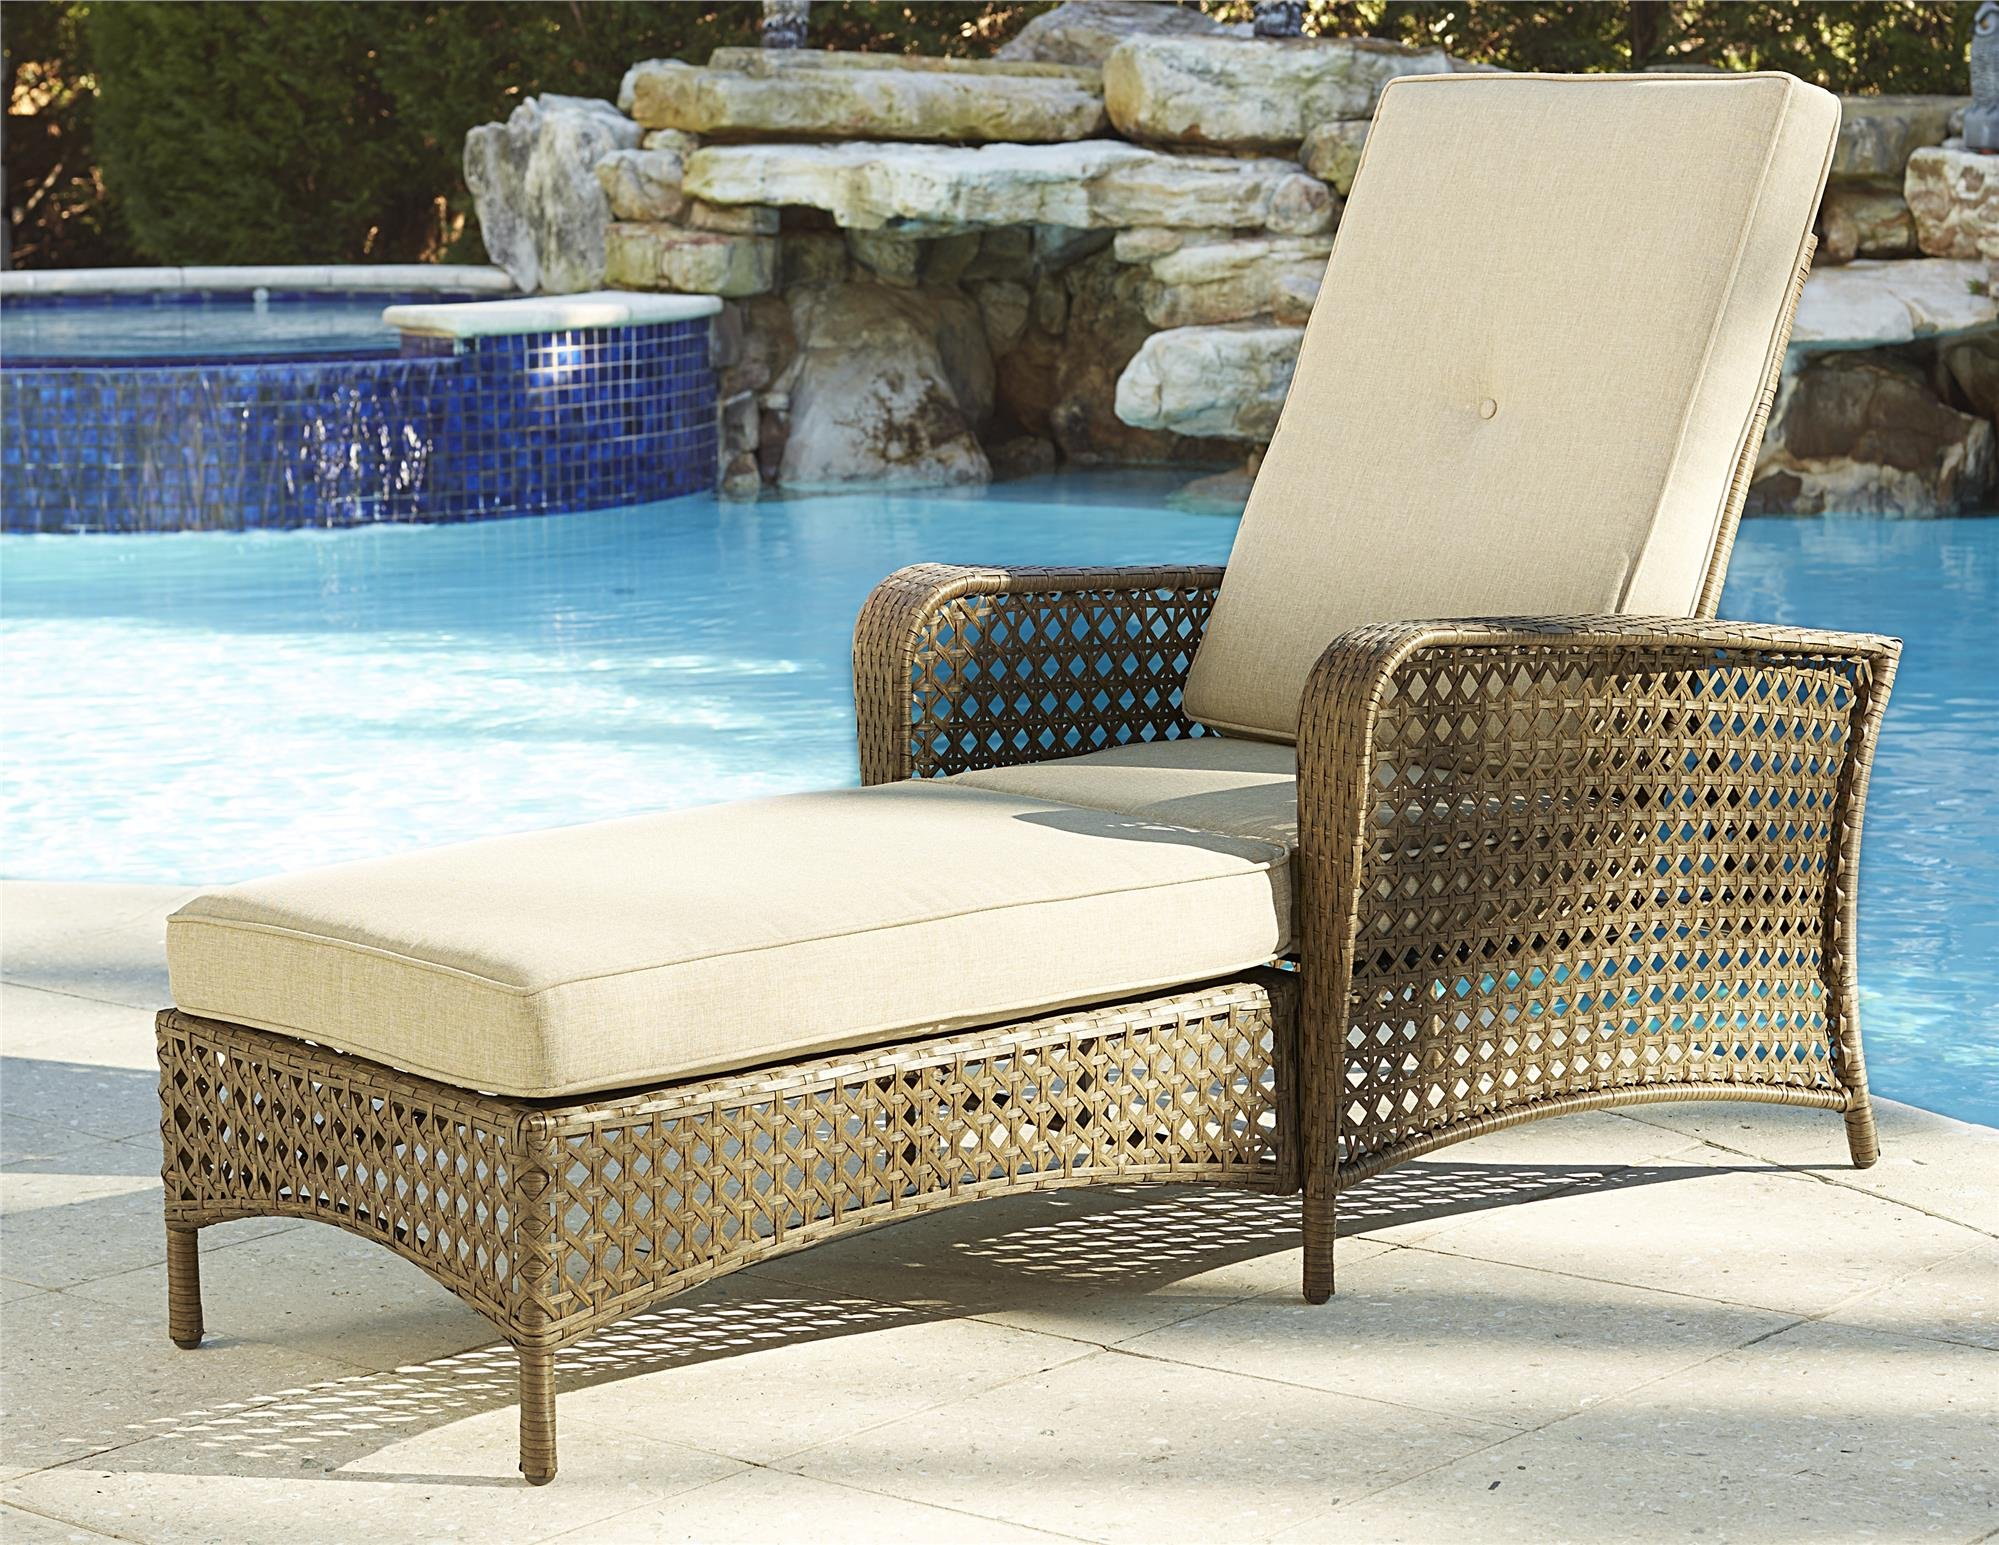 Cosco Outdoor Adjustable Chaise Lounge Chair Lakewood Ranch Steel Woven Wicker Patio Furniture with Cushion, Brown by Cosco Outdoor Living